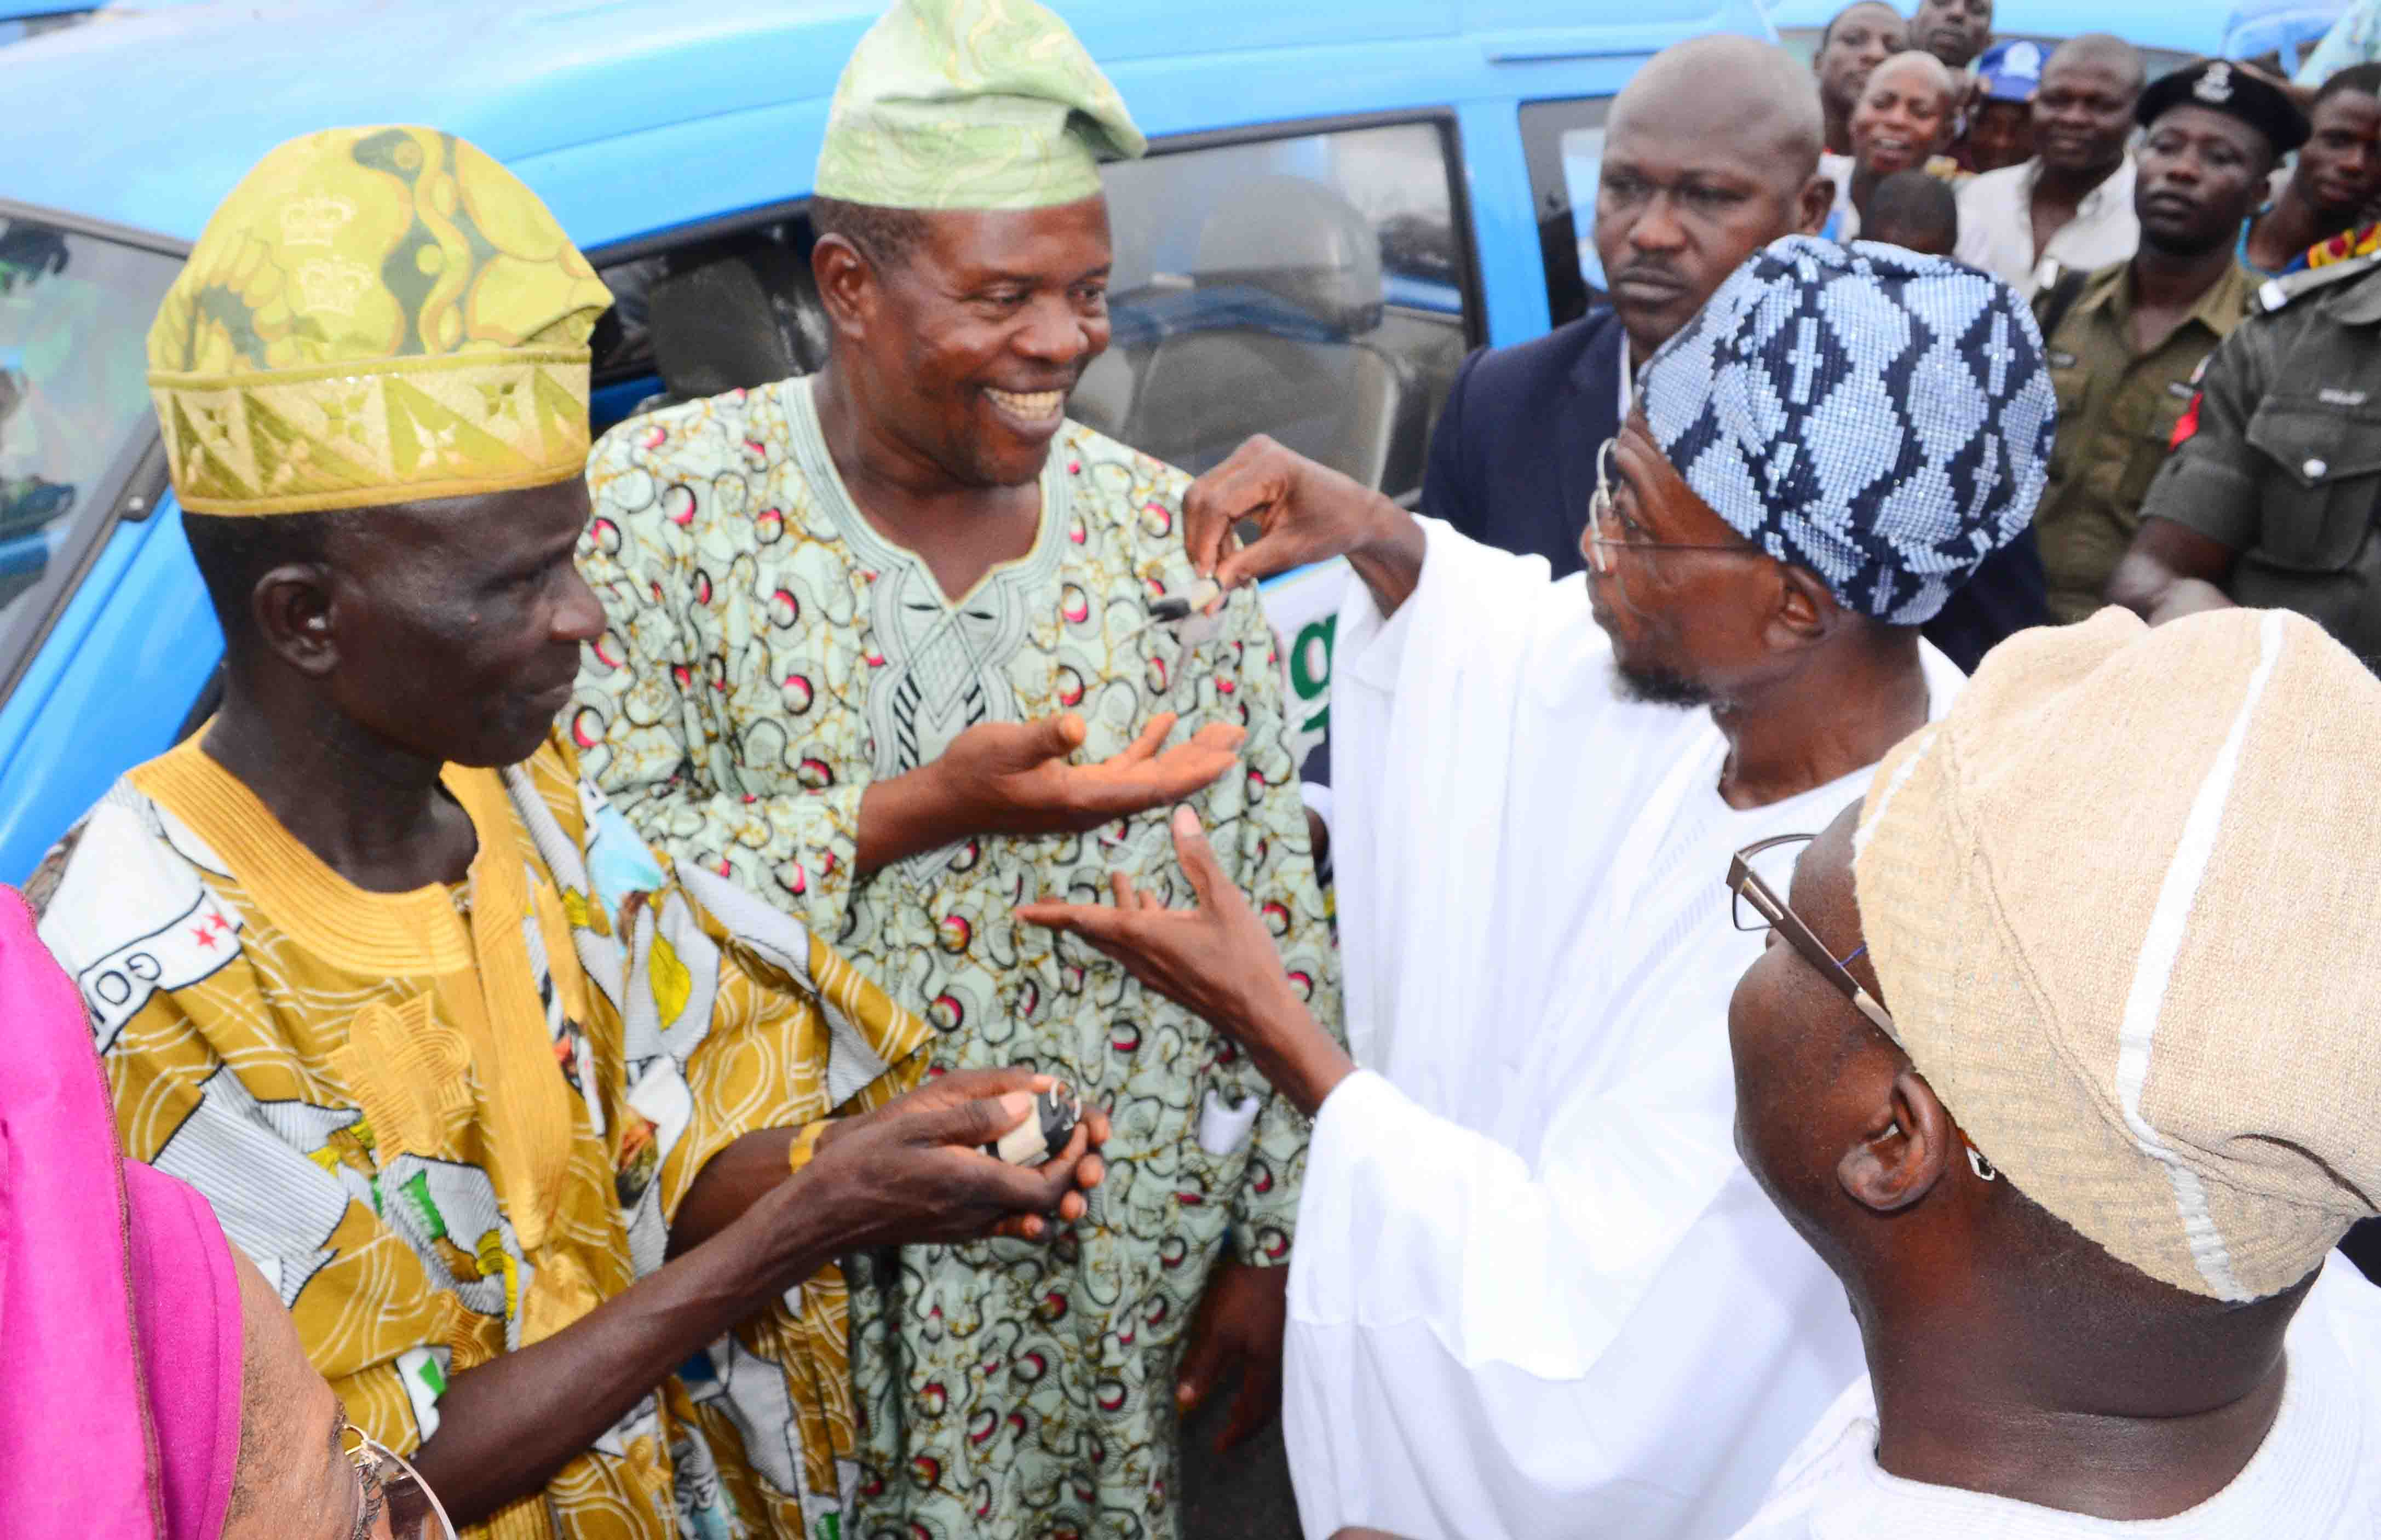 Governor State of Osun, Ogbeni Rauf Aregbesola (2nd right) handing-over key to one of the Mini-Buses to Zonal Chairman, Road Transport Employers Association of Nigeria (RTEAN) Osogbo/Olorunda/Irepodun/Orolu Local governments, Alhaji Rauf Agboola (2nd left), during the distribution and Launching of Micro Credit Agency at Nelson Mandela Freedom Park, Osogbo, State of Osun. With them are, Commissioner for Commerce, Industries, Cooperatives and Empowerment, Mr Ismaila Alagbada (right) and President, Cooperative Transporters, Alhaji Asimiyu Oladejo (left) on Wednesday 09-07-2014